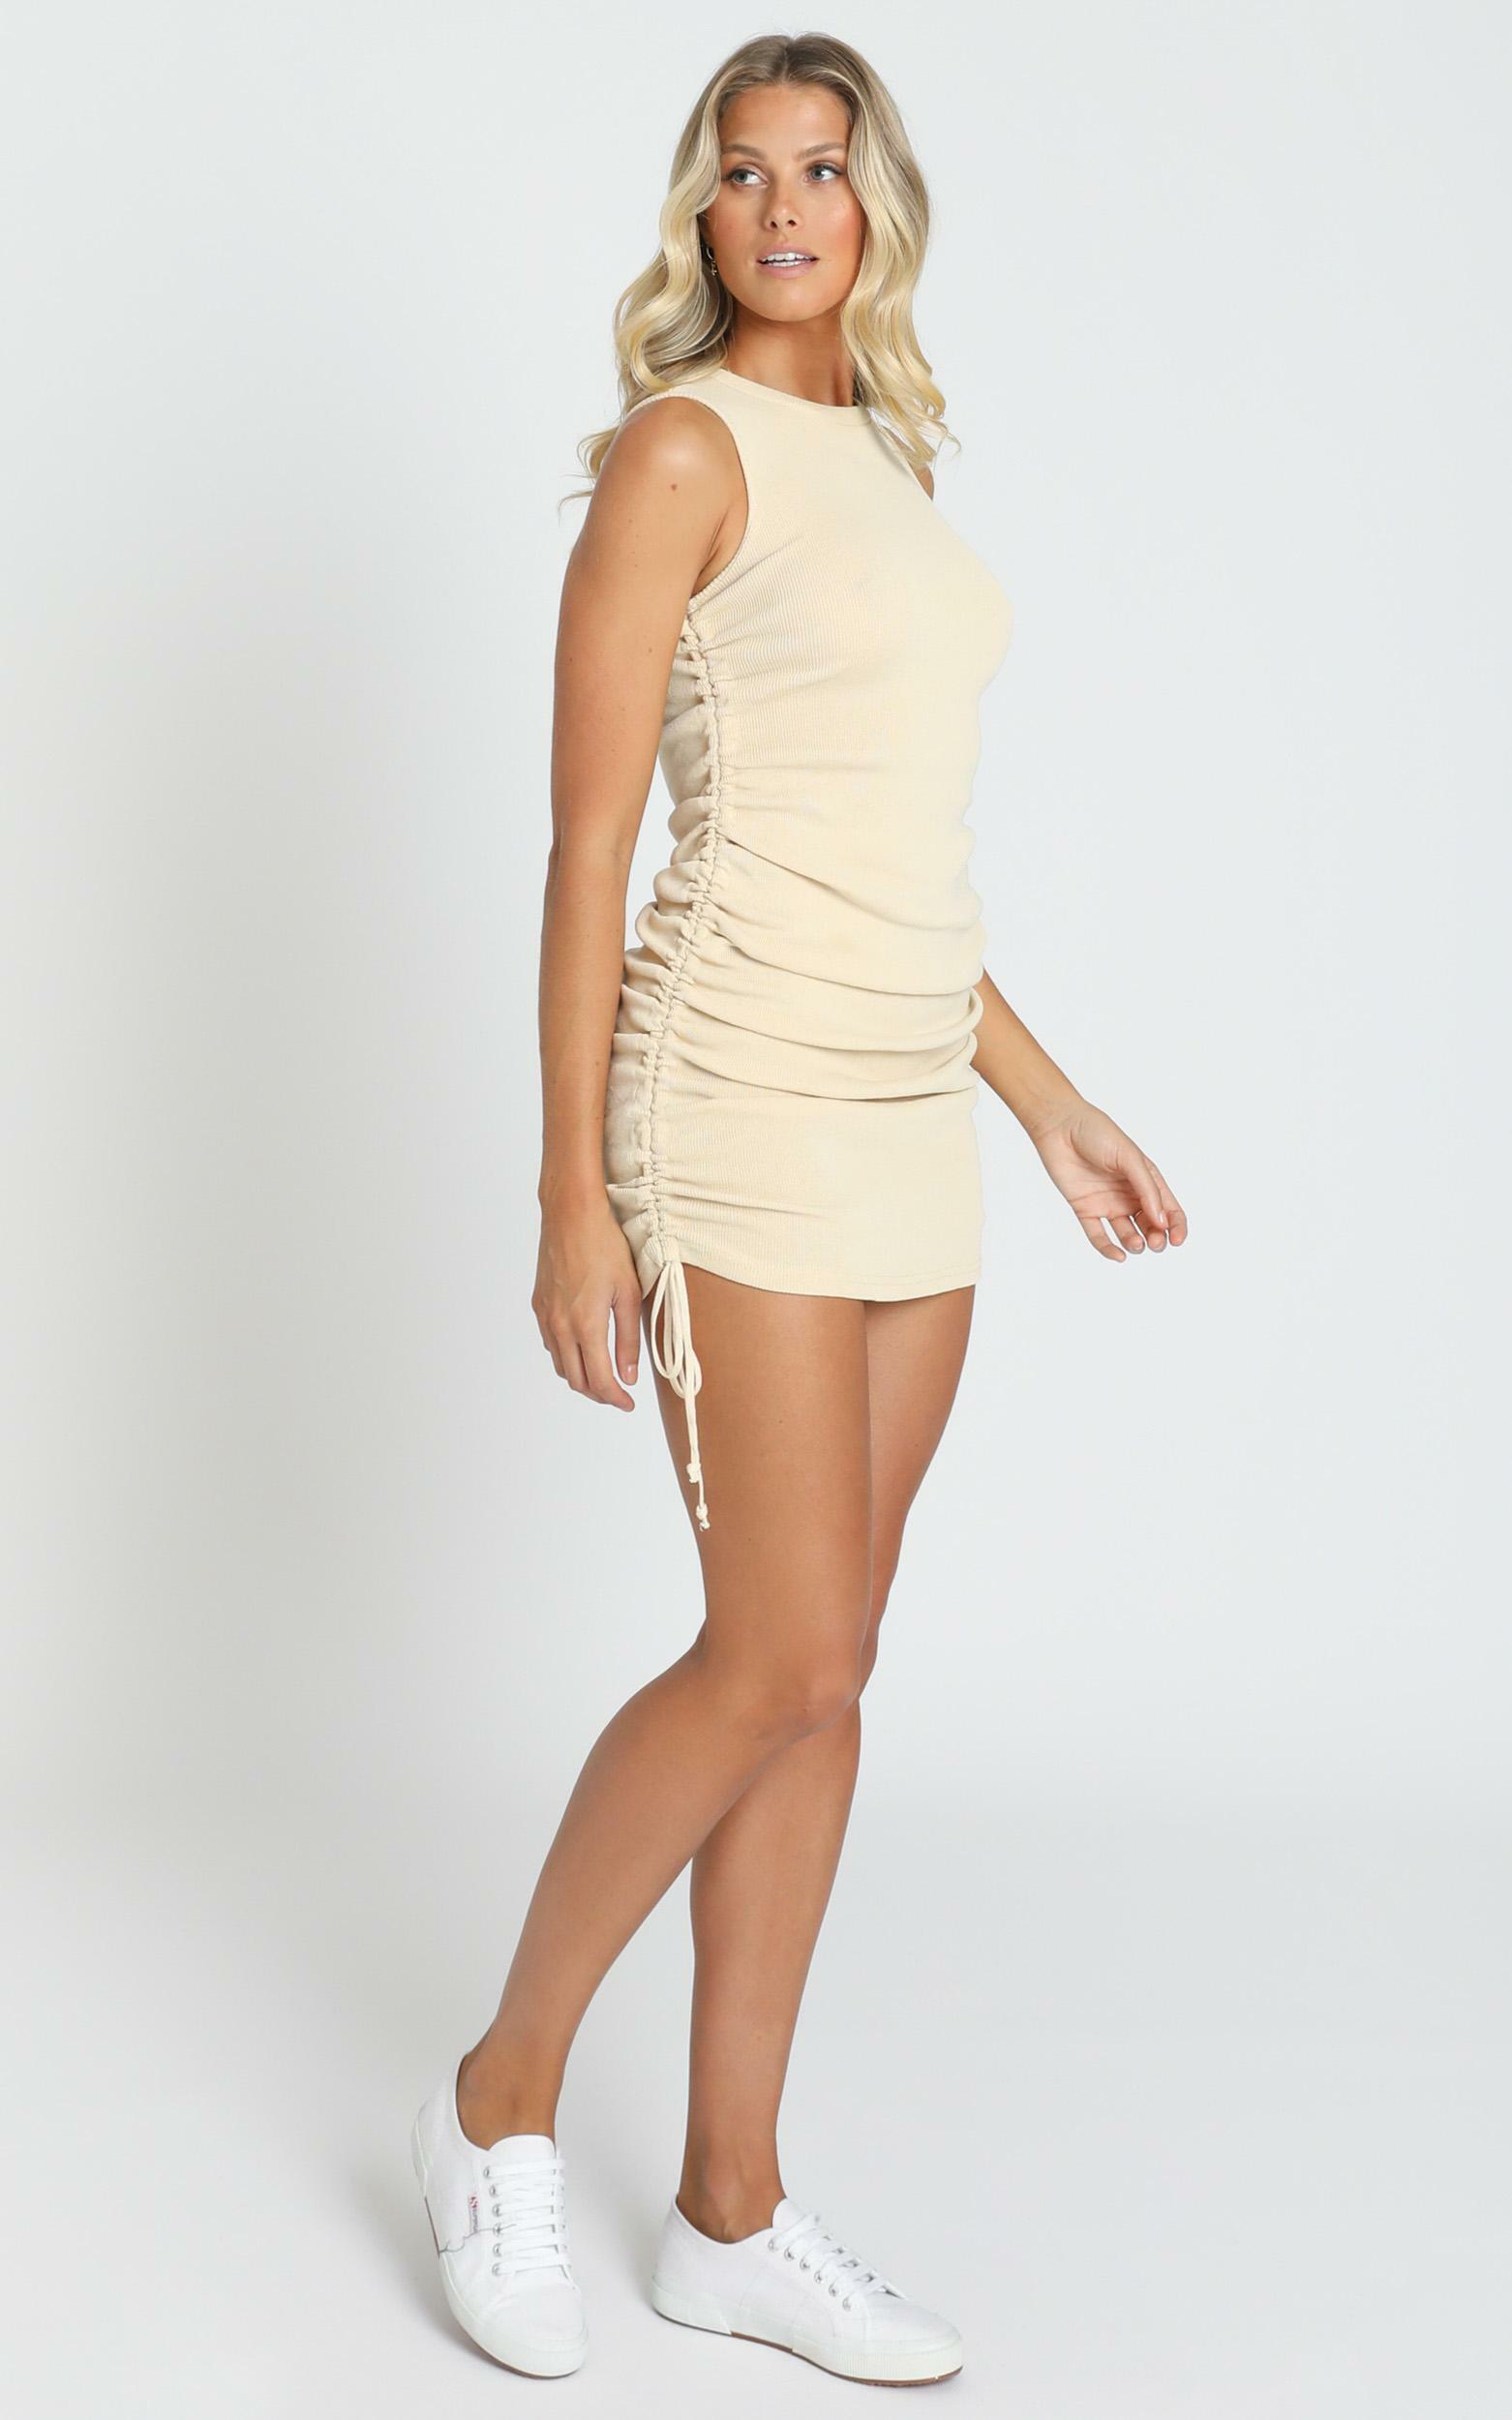 Lioness - Military Minds dress in cream - 6 (XS), Cream, hi-res image number null